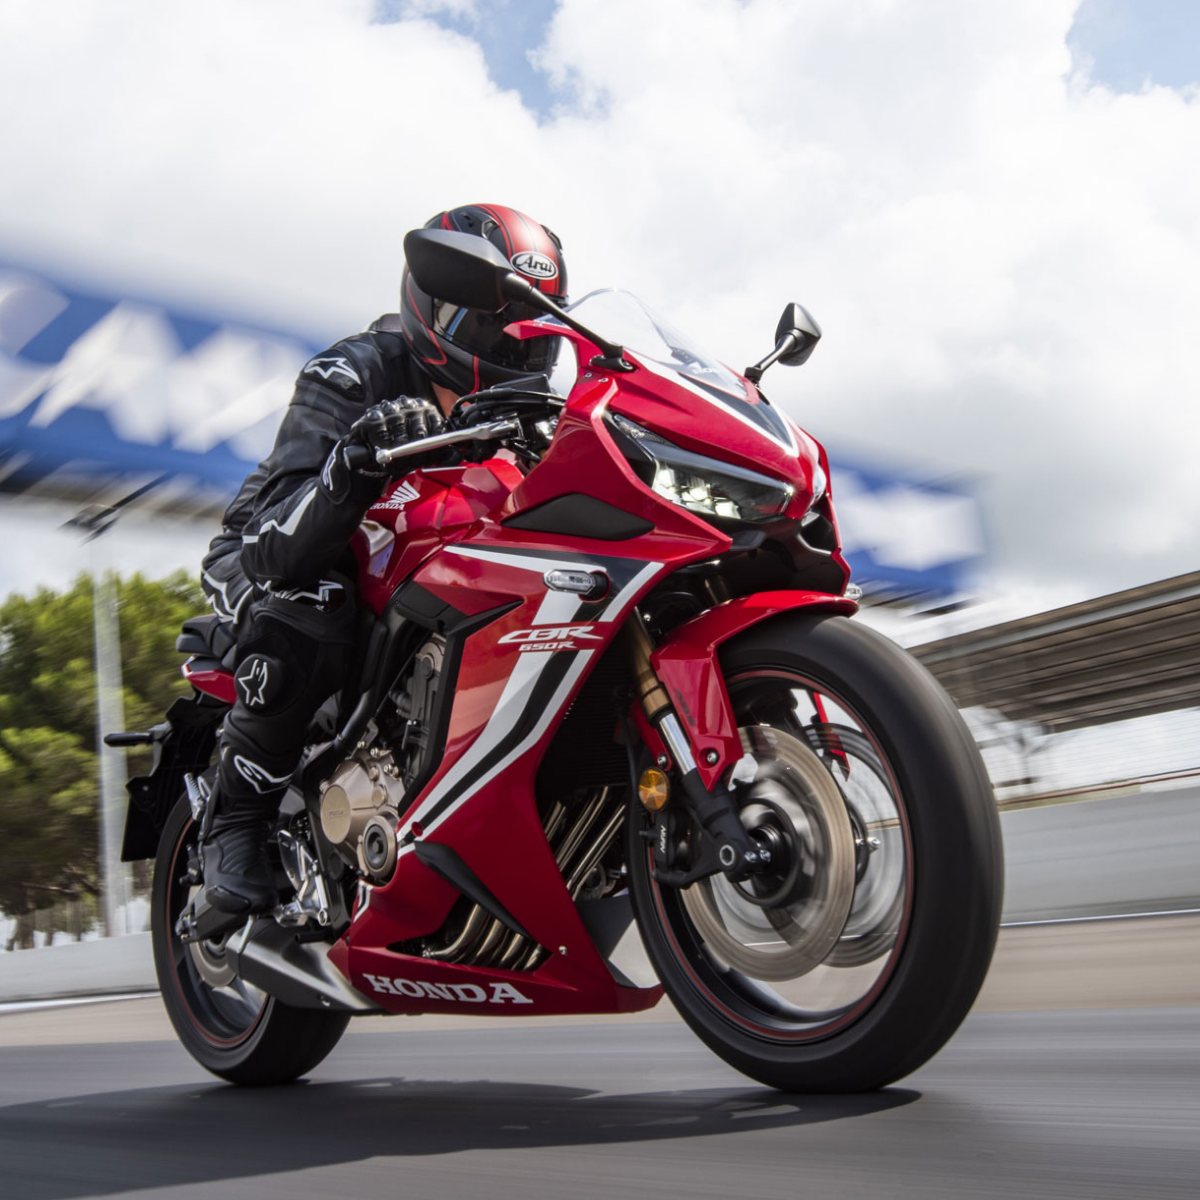 2019 Honda Cbr650r Launched Priced At Inr 7 70 Lakh Honda